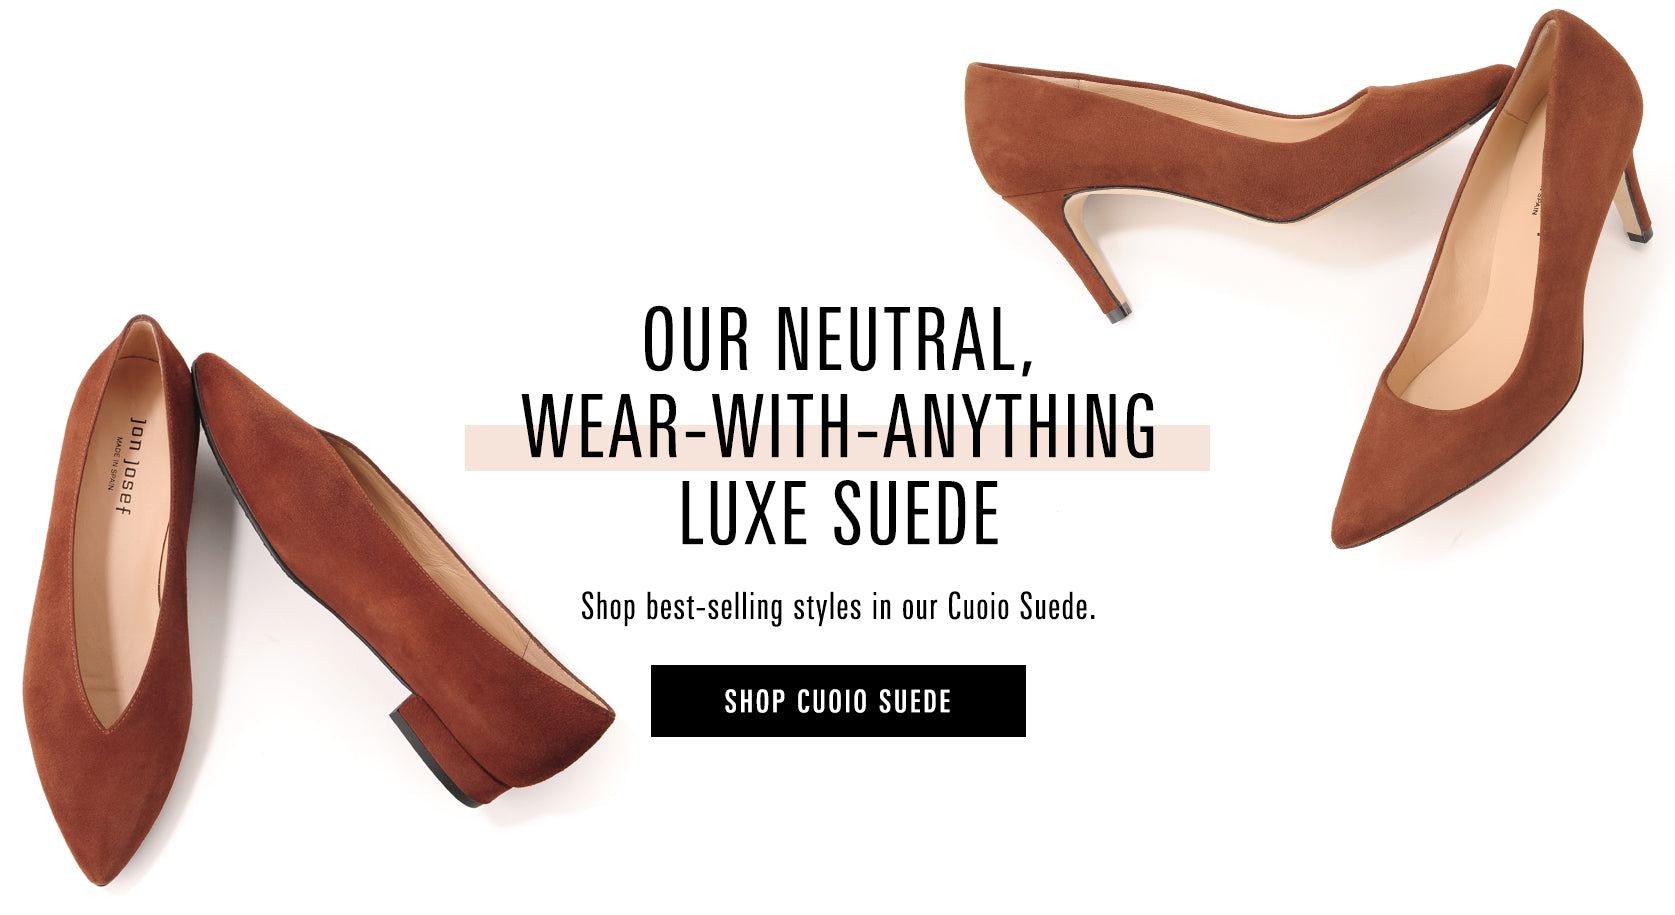 Shop the all new Cuoio Suede in our best-selling timeless silhouettes